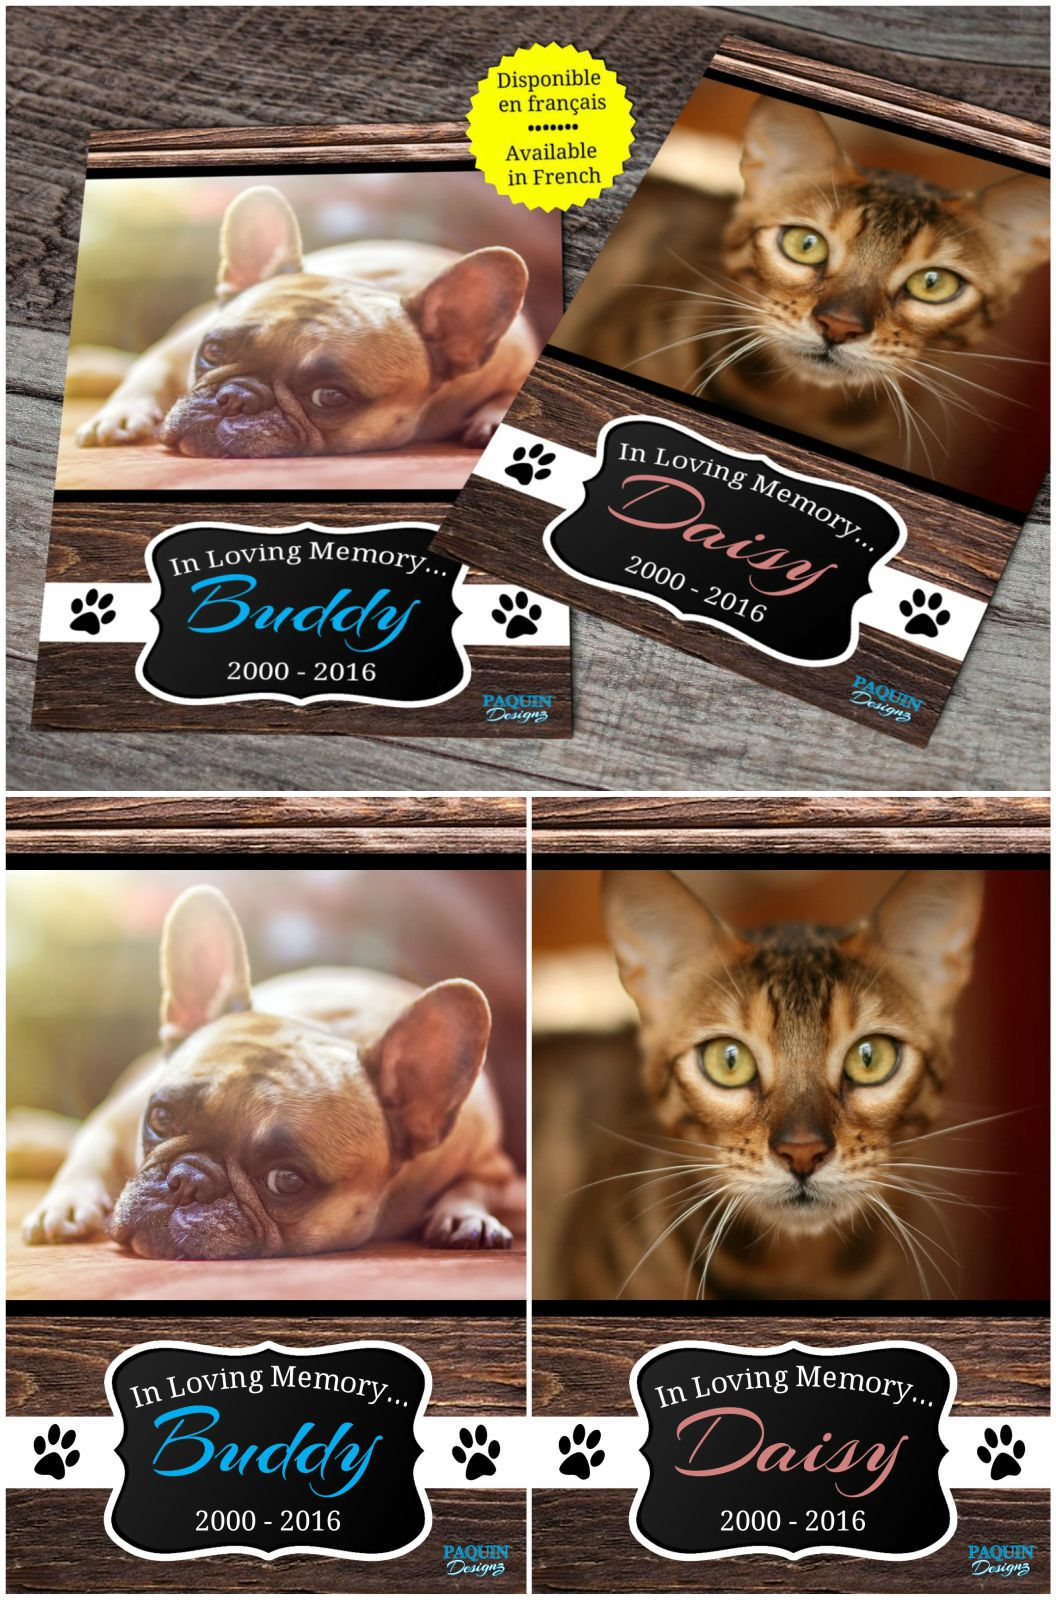 Calm Ashes Pet Memorial Pet Memorial Gifts To Honor A Beloved Pet That Has Passed Away Pet Memorial Gifts Jewelry Pet Memorial Gifts Pet Memorial Gifts Pet Memorial Service gifts Pet Memorial Gifts